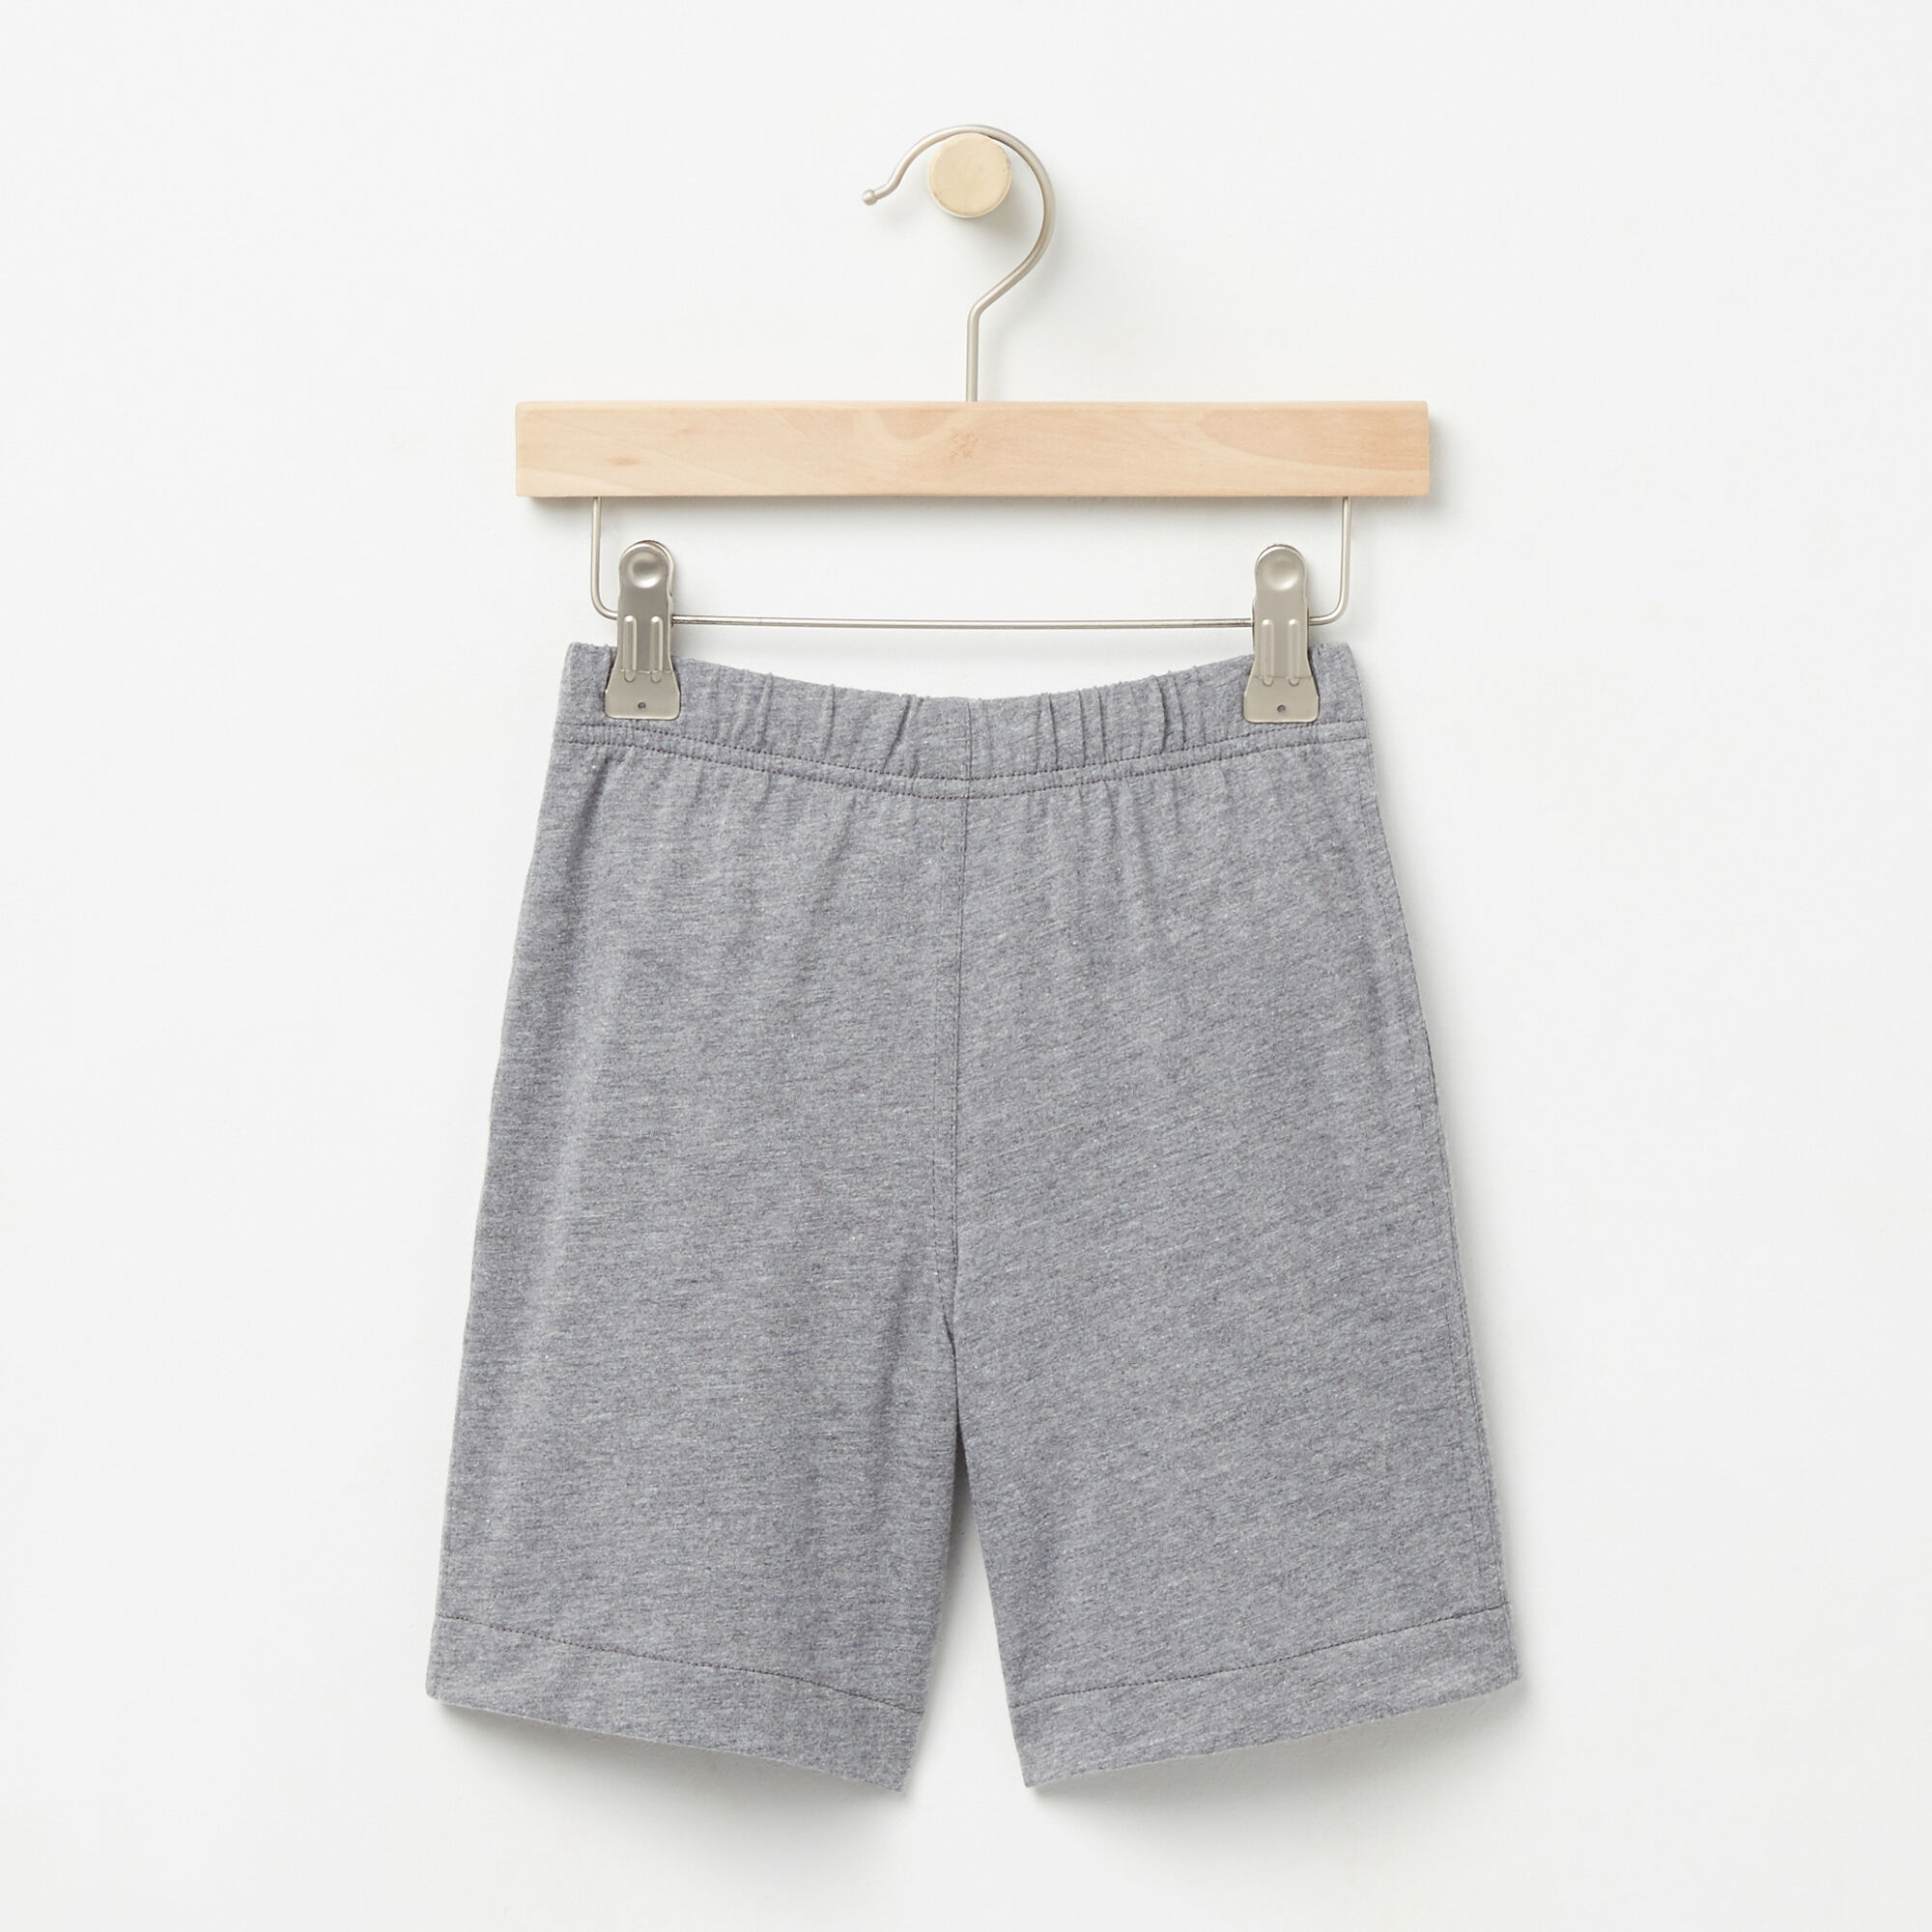 Toddler Camp Pull On Shorts